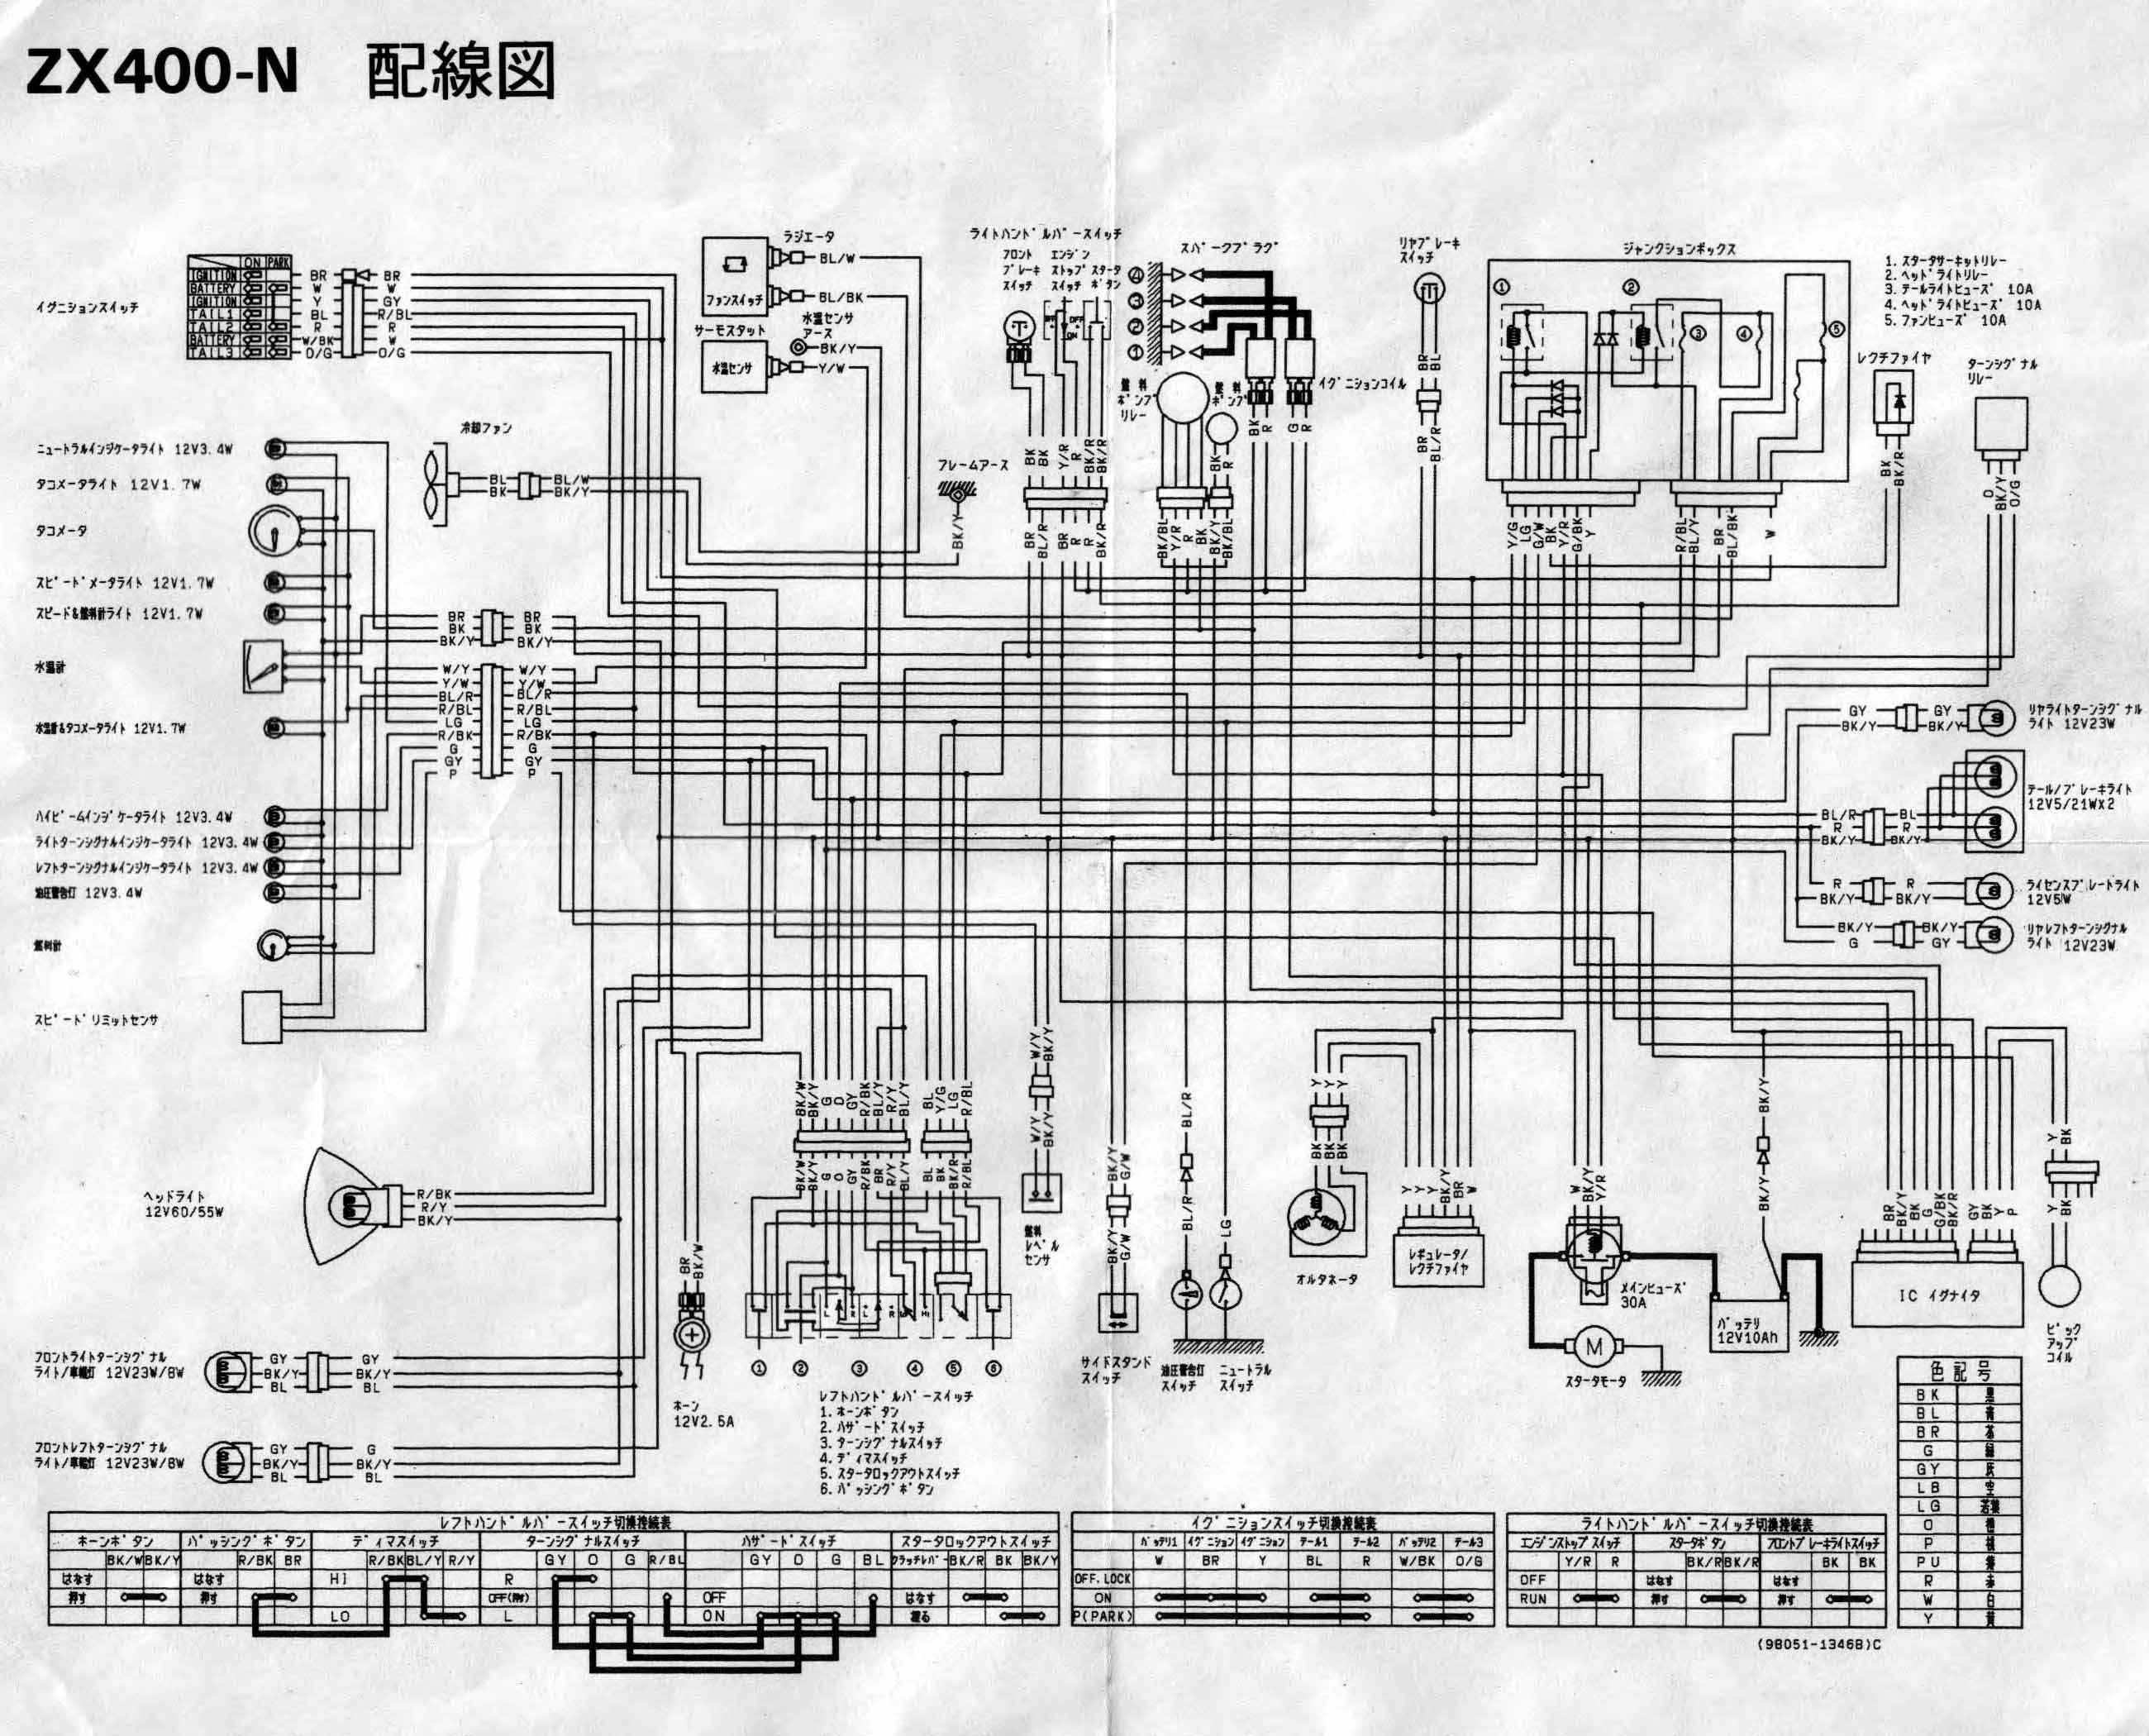 kawasaki concours wiring diagram wire center u2022 rh ayseesra co 1996 kawasaki zx7r wiring diagram 2002 kawasaki zx7r wiring diagram